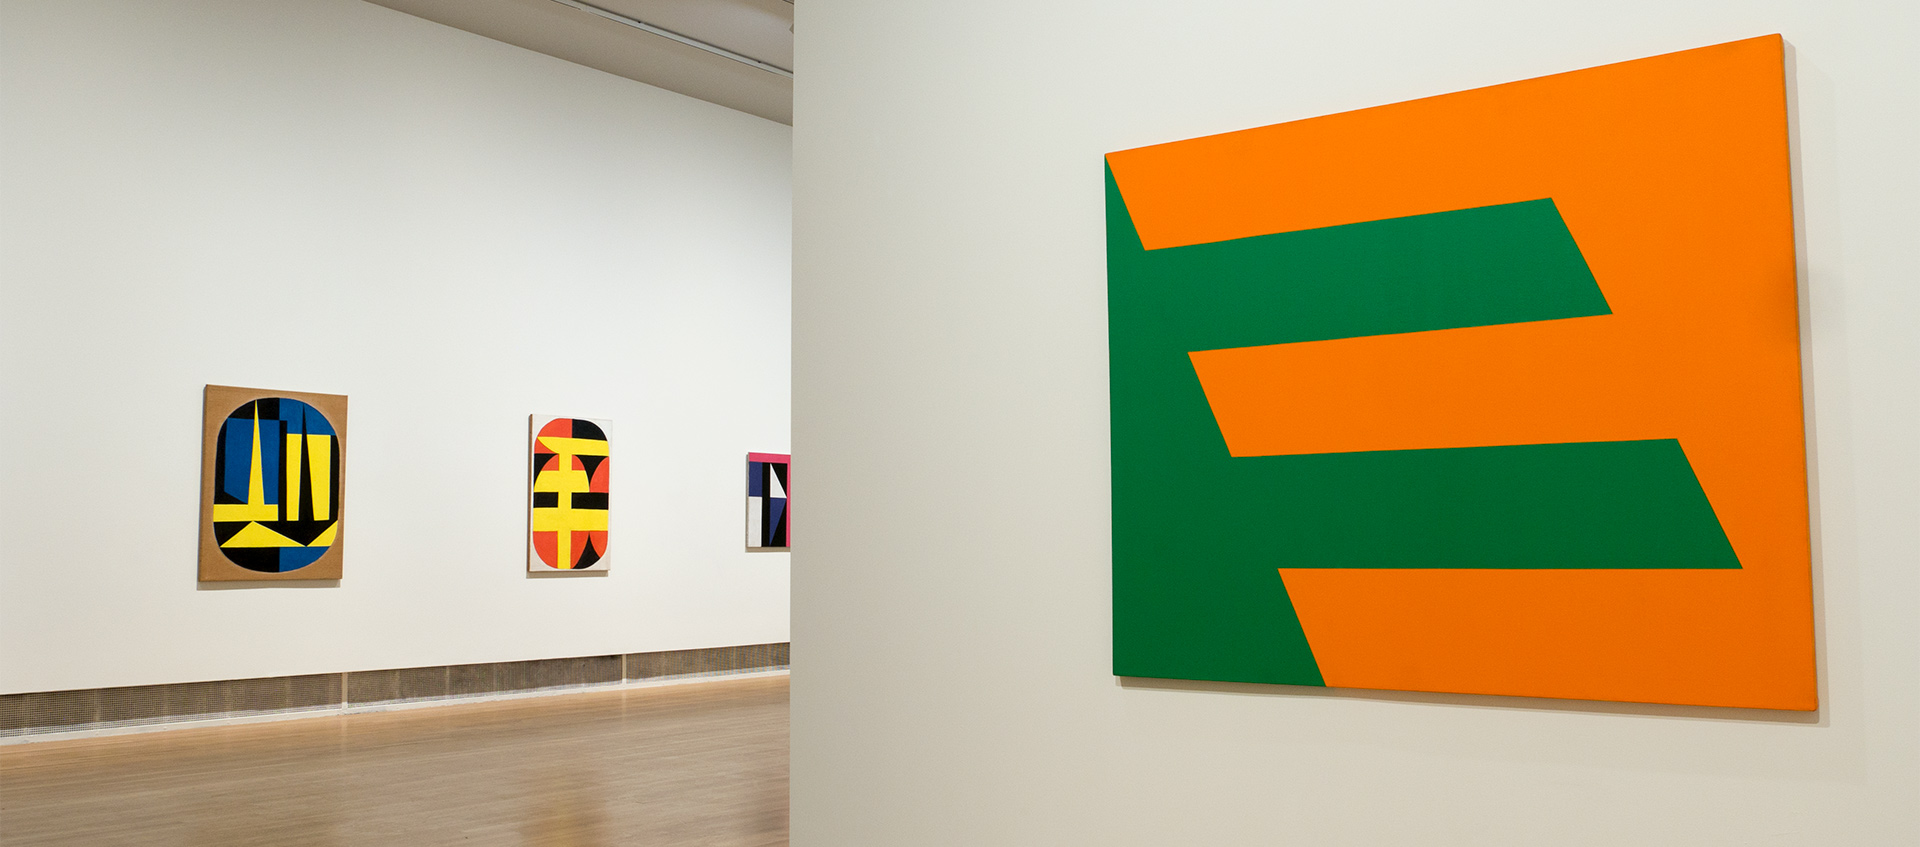 Installation of Carmen Herrera works at the entrance to the Wexner Center galleries